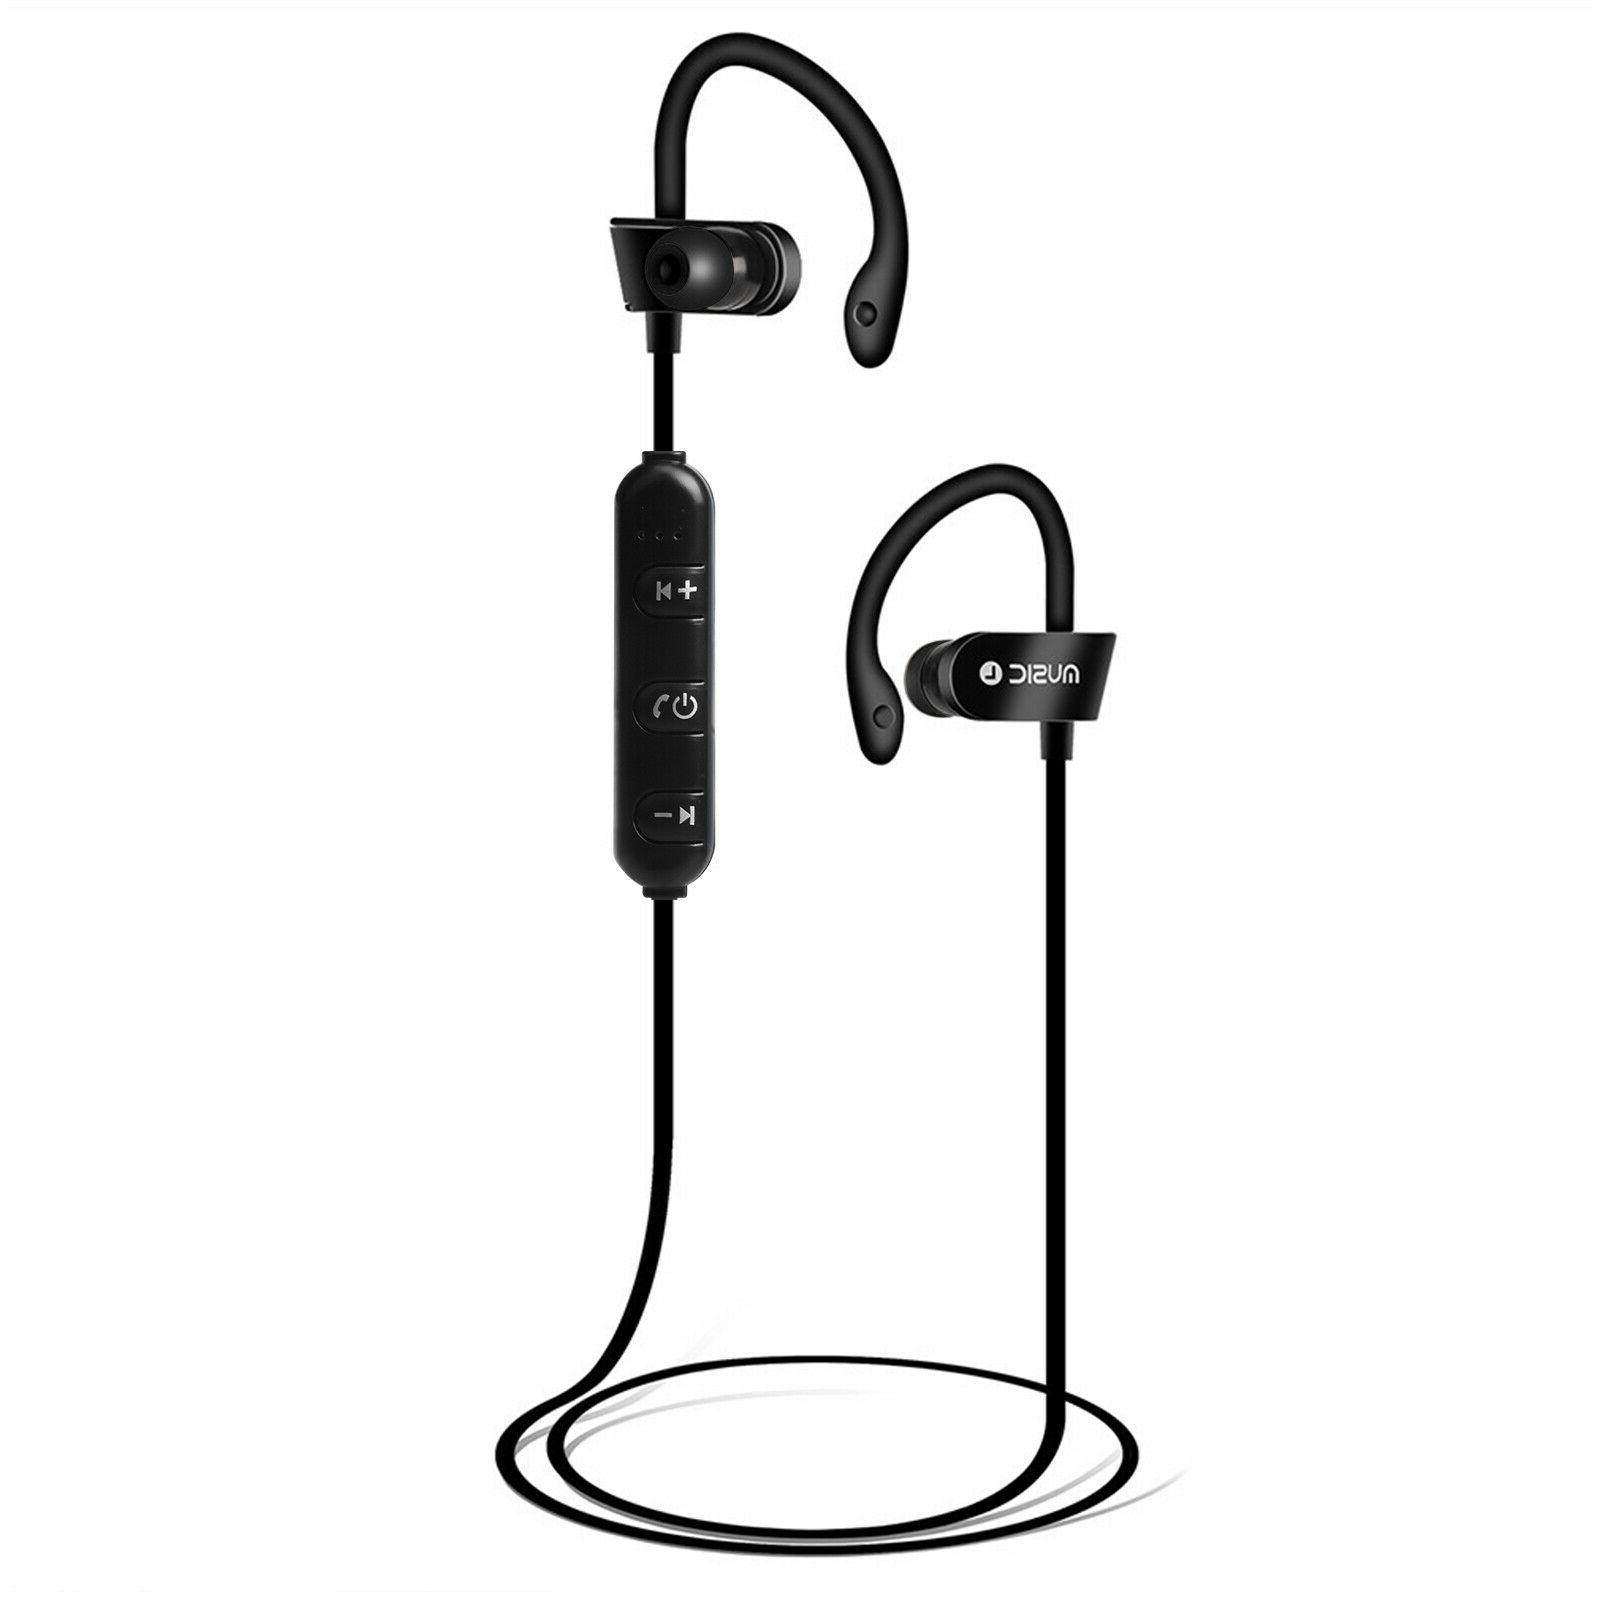 Sweatproof Wireless Headphones Ear Headsets